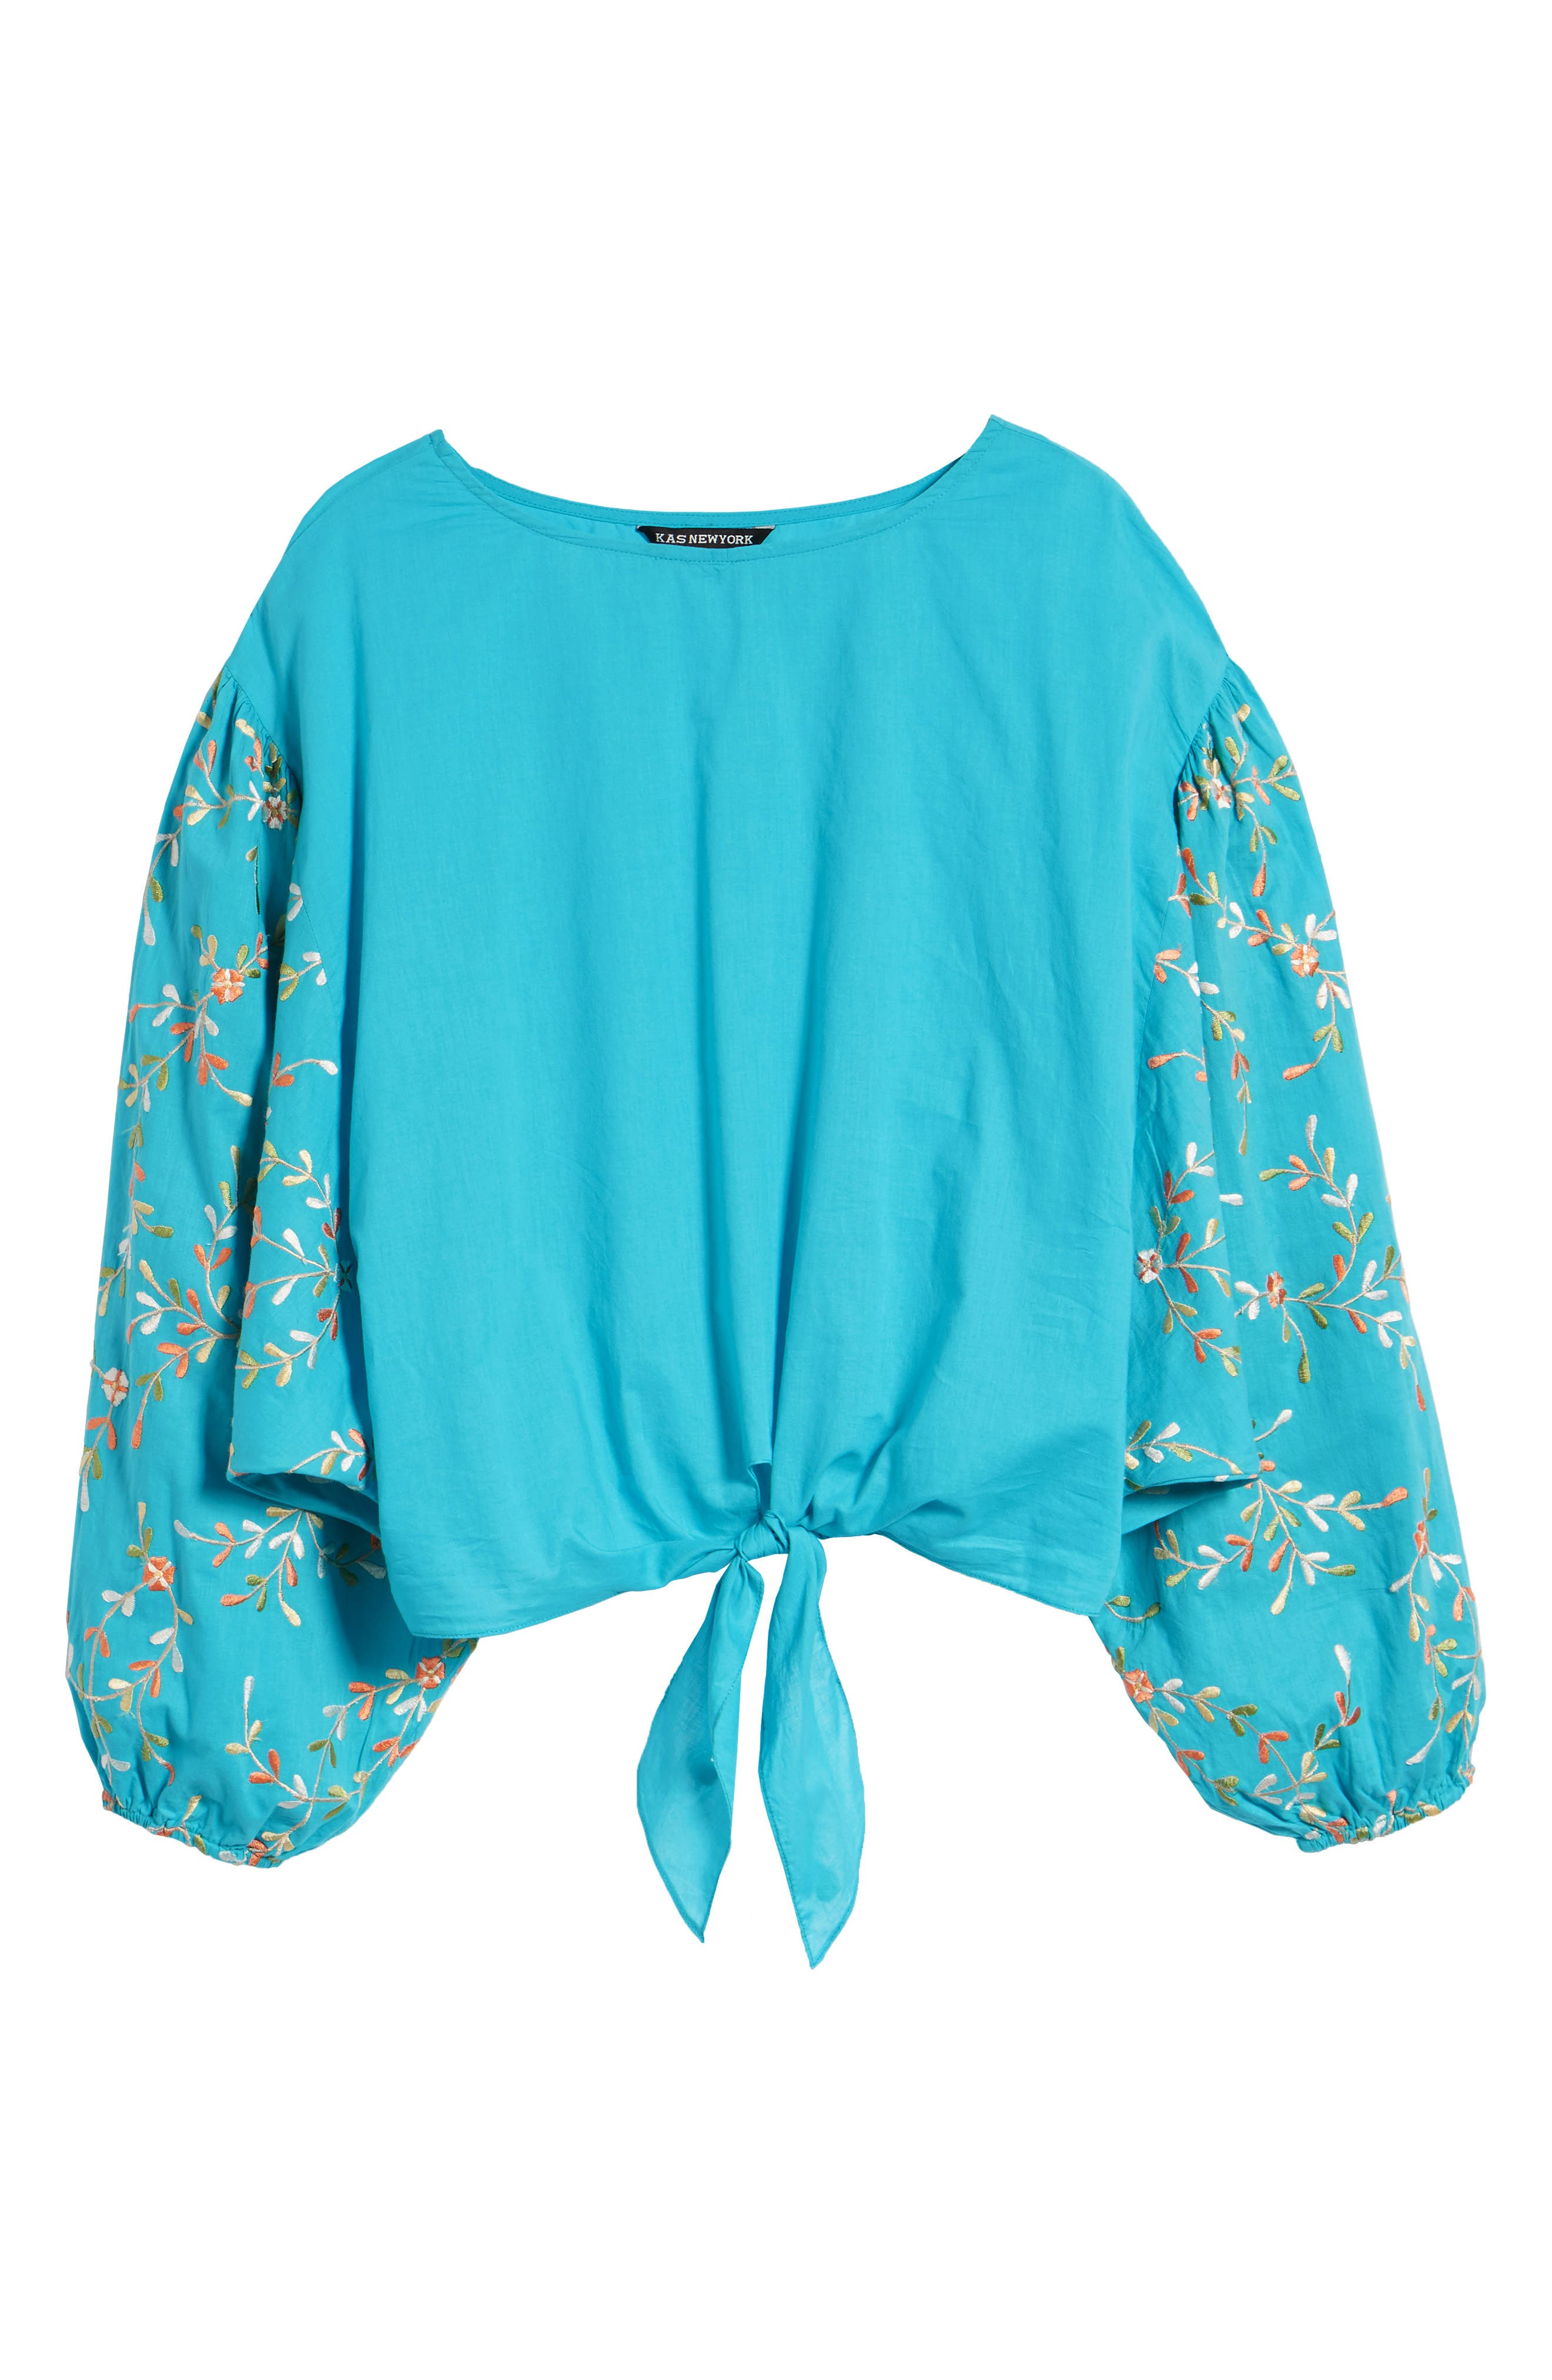 Coline Front Tie Embroidered Sleeve Blouse,                             Alternate thumbnail 7, color,                             440